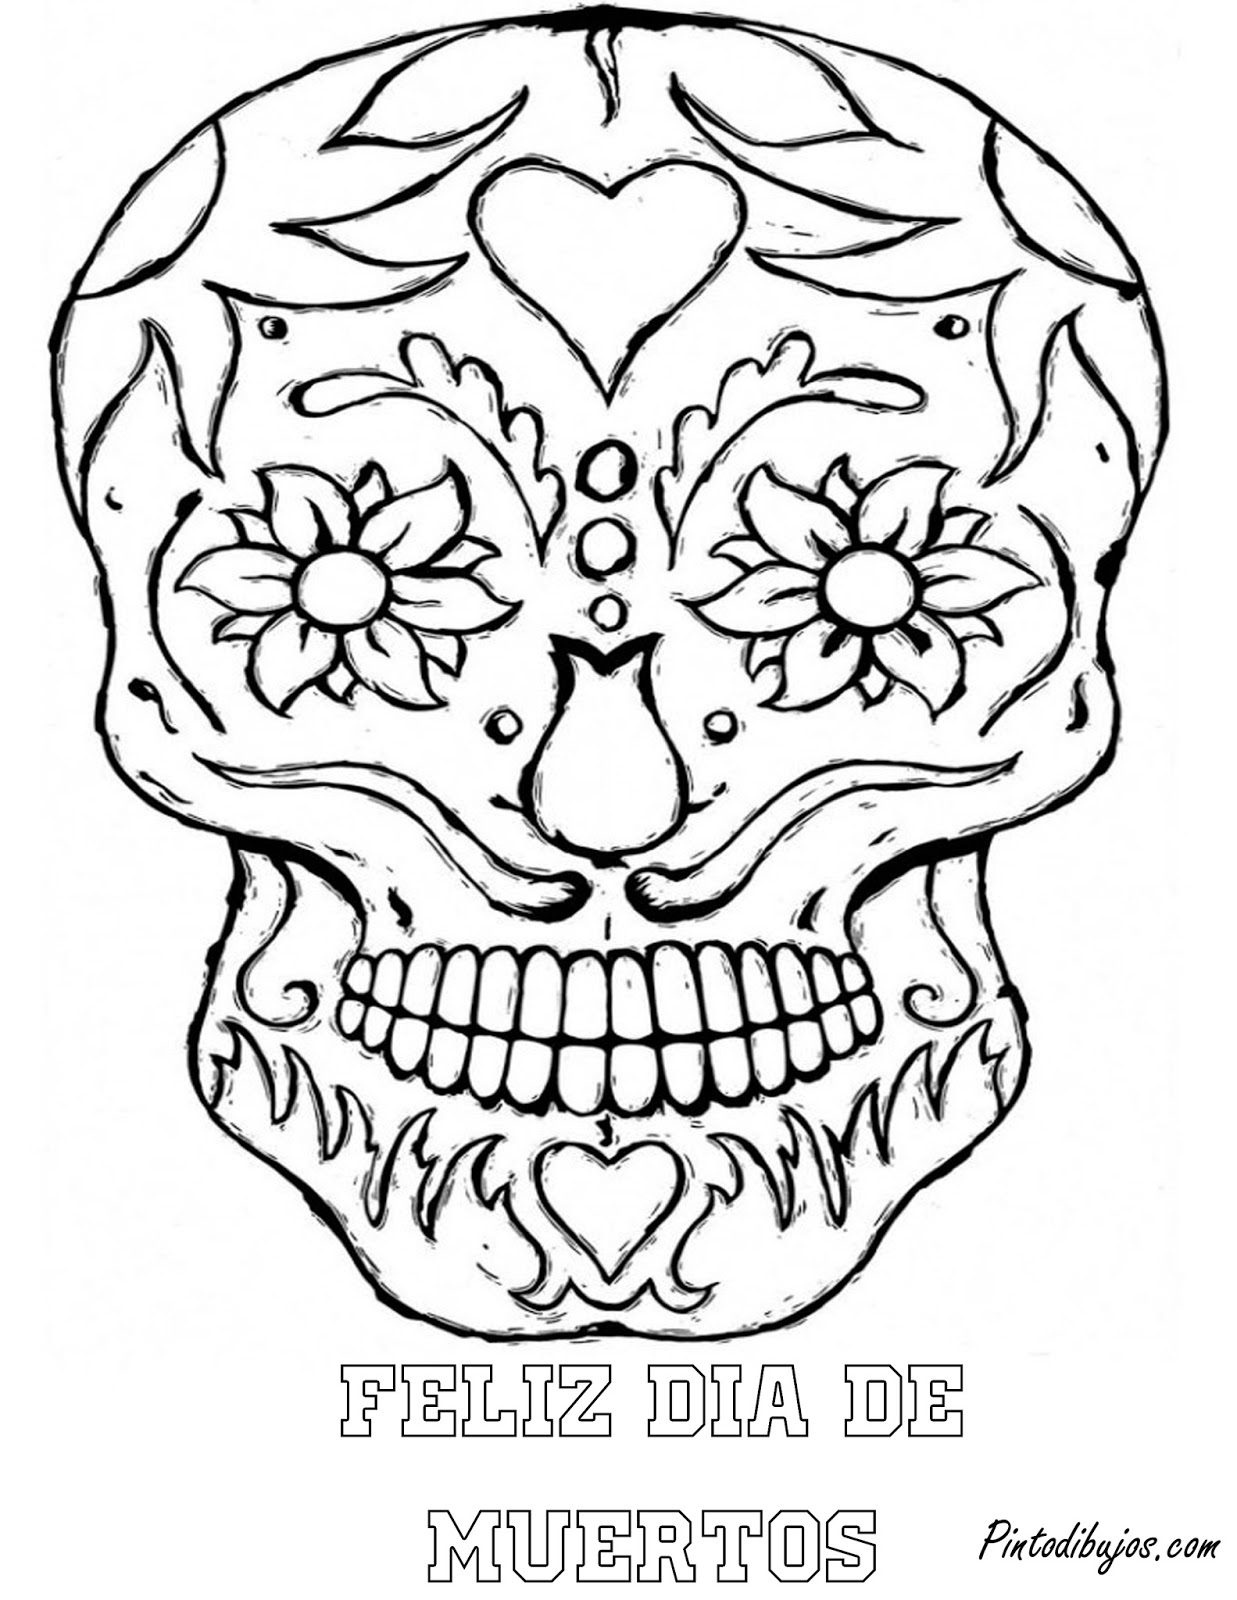 Clip Art El Chavo Del Ocho Coloring Pages coloring pages skull mandala day of the dead pages